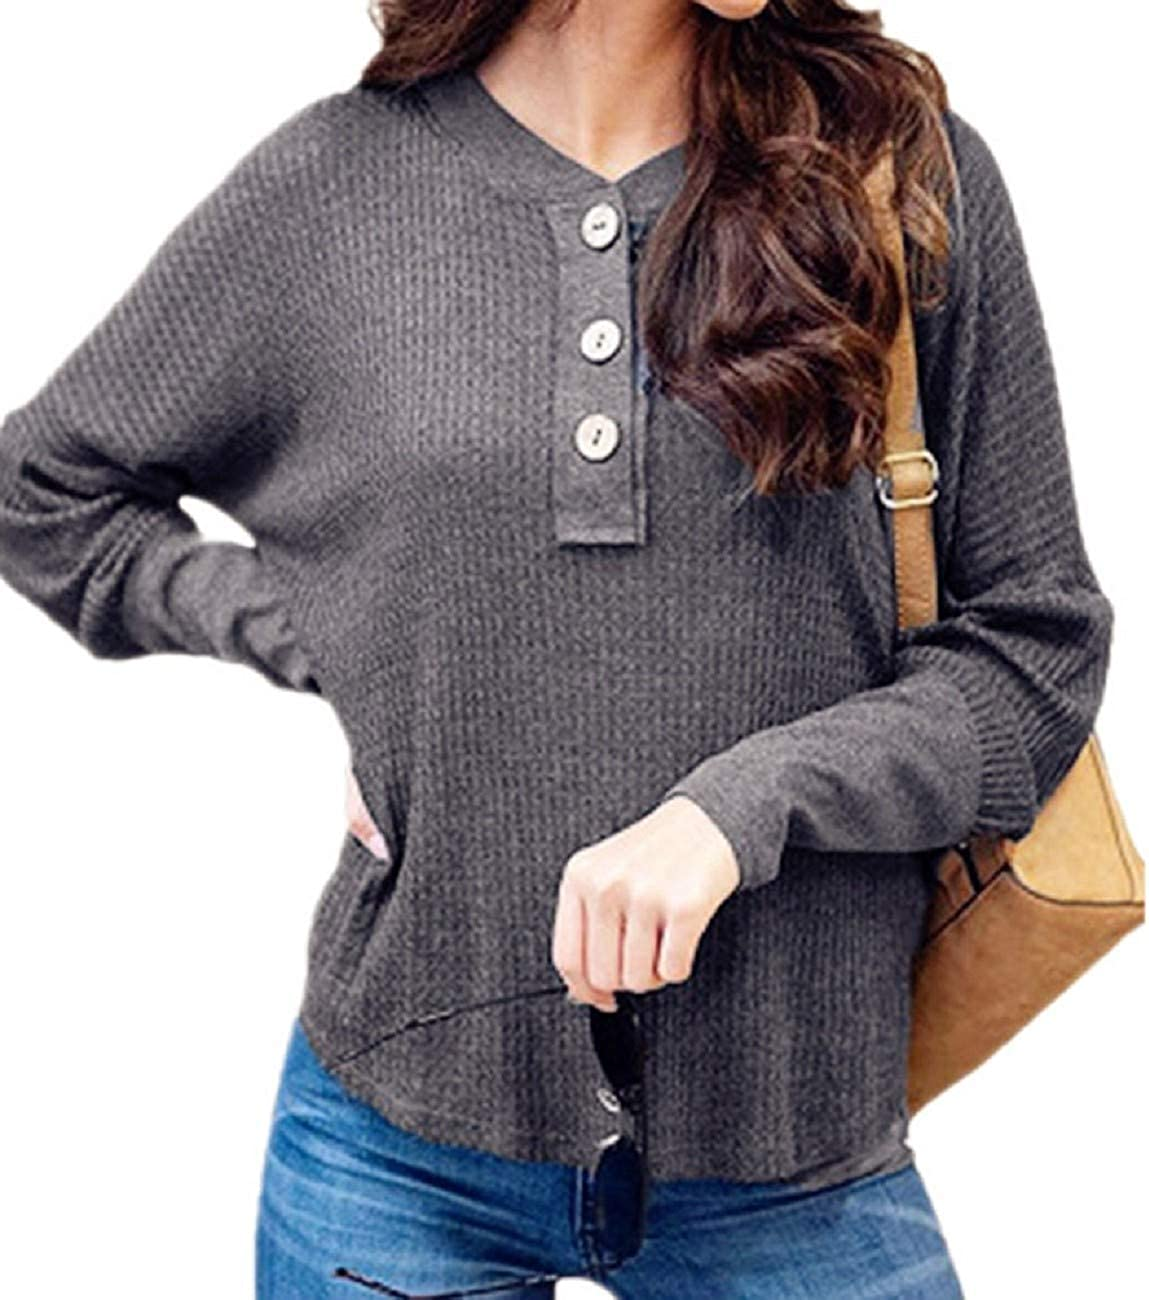 FAPIZI Womens Waffle Knit Tunic Tops Long Sleeve O Neck Button Solid Color Casual Tops Loose Bat Wing Plain Blouse